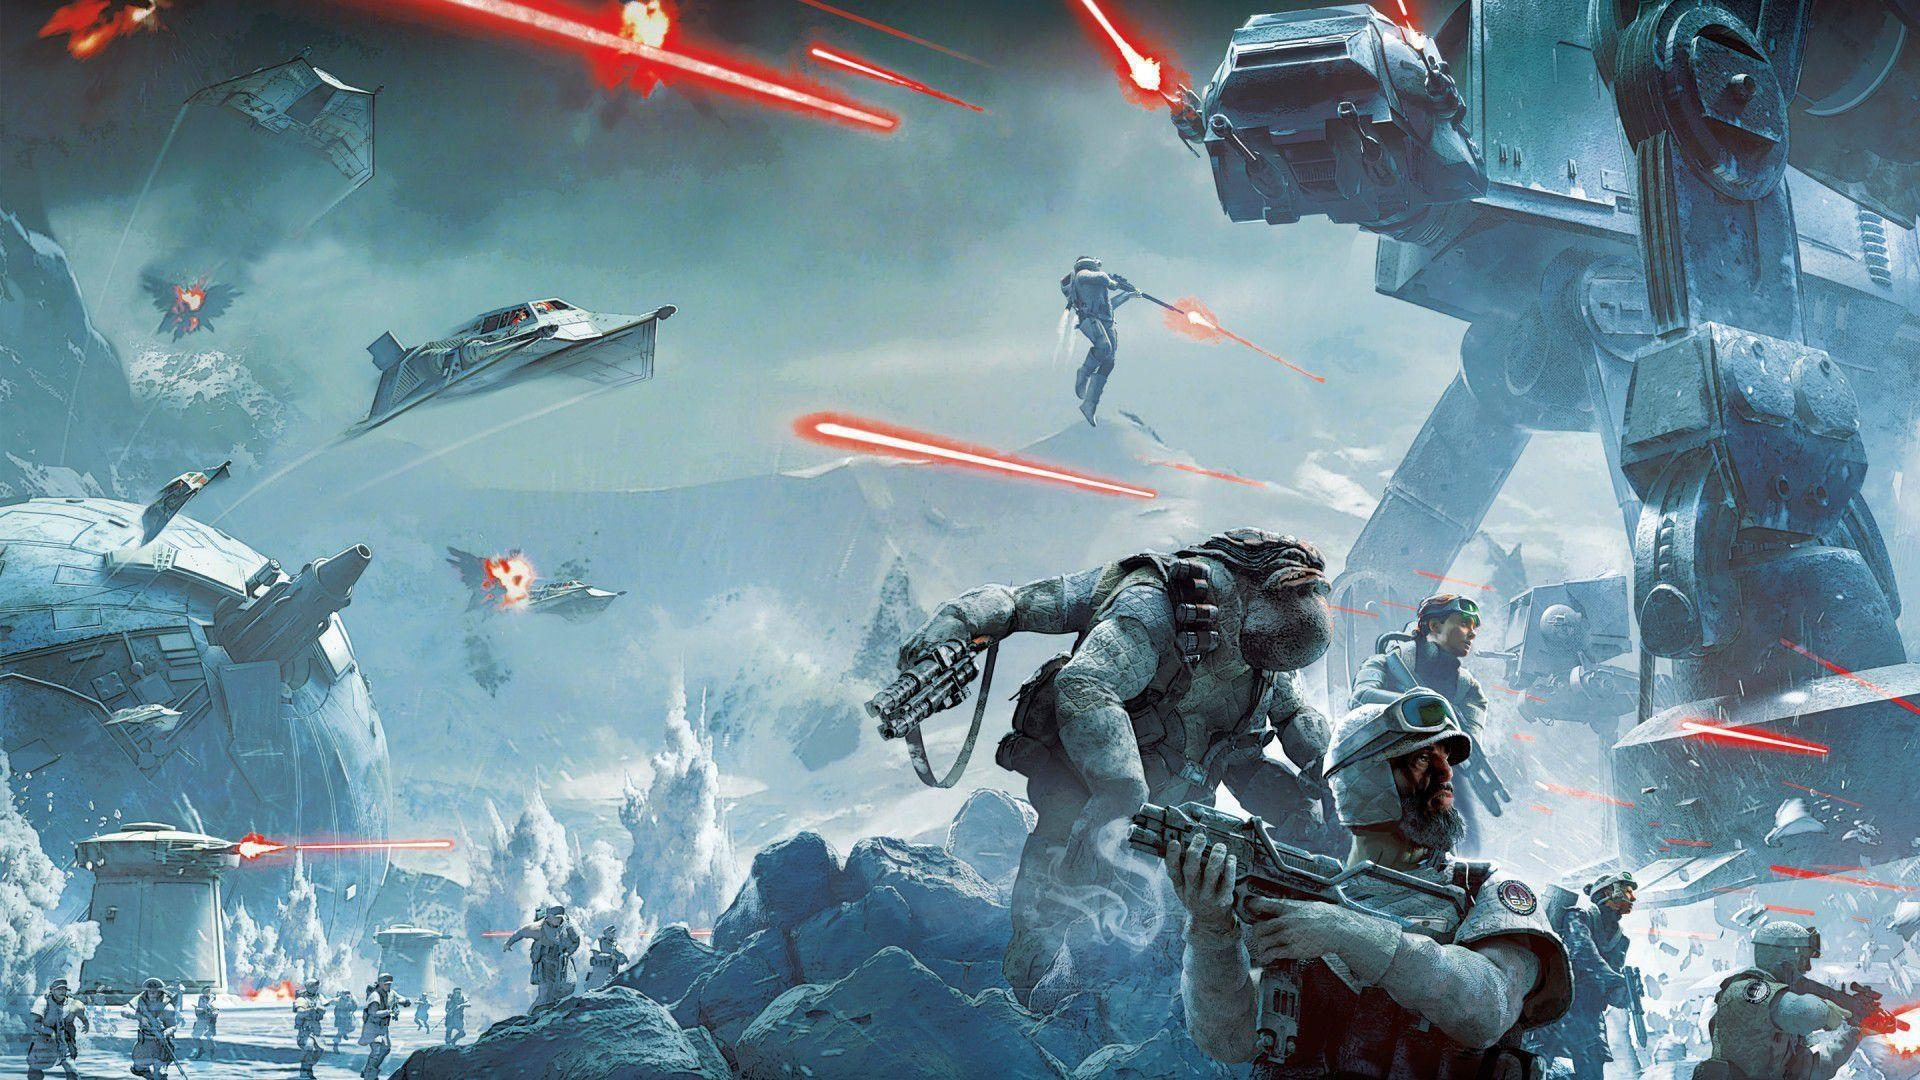 Star Wars Battlefront 2 Wallpapers Wallpaper Cave